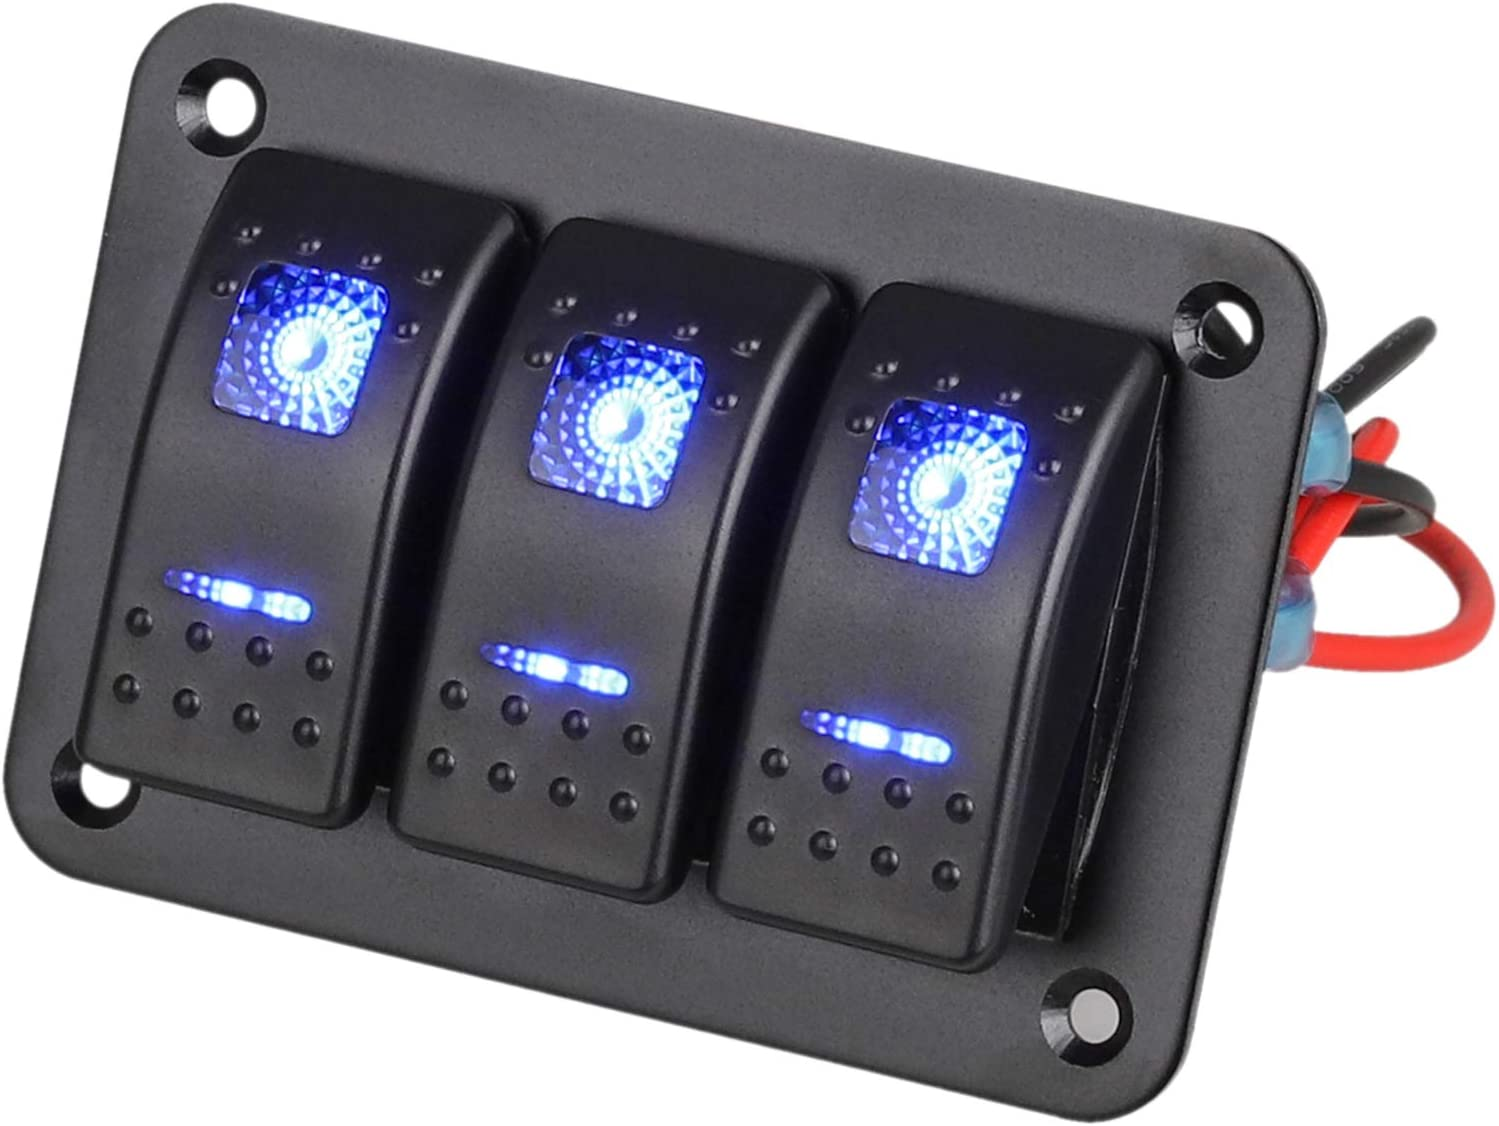 Amazon Com Linkstyle 3 Gang Car Boat Rv Marine Switch Panel Rocker Switch Panel With Blue Led Light 5 Pin On Off Switch Panel With Diy Stickers Set Automotive [ 1124 x 1500 Pixel ]